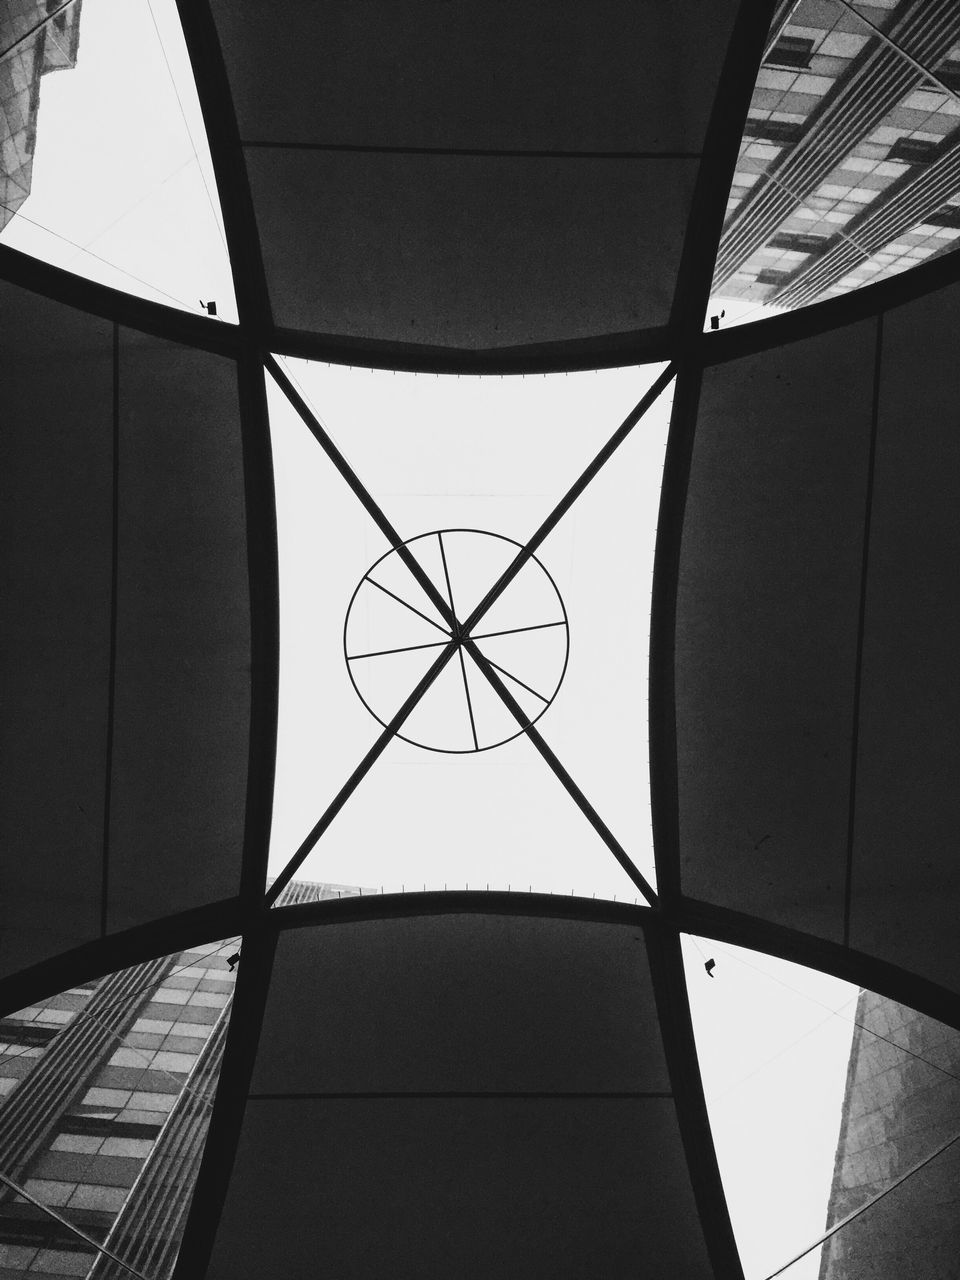 low angle view, architecture, built structure, indoors, ceiling, no people, day, sky, close-up